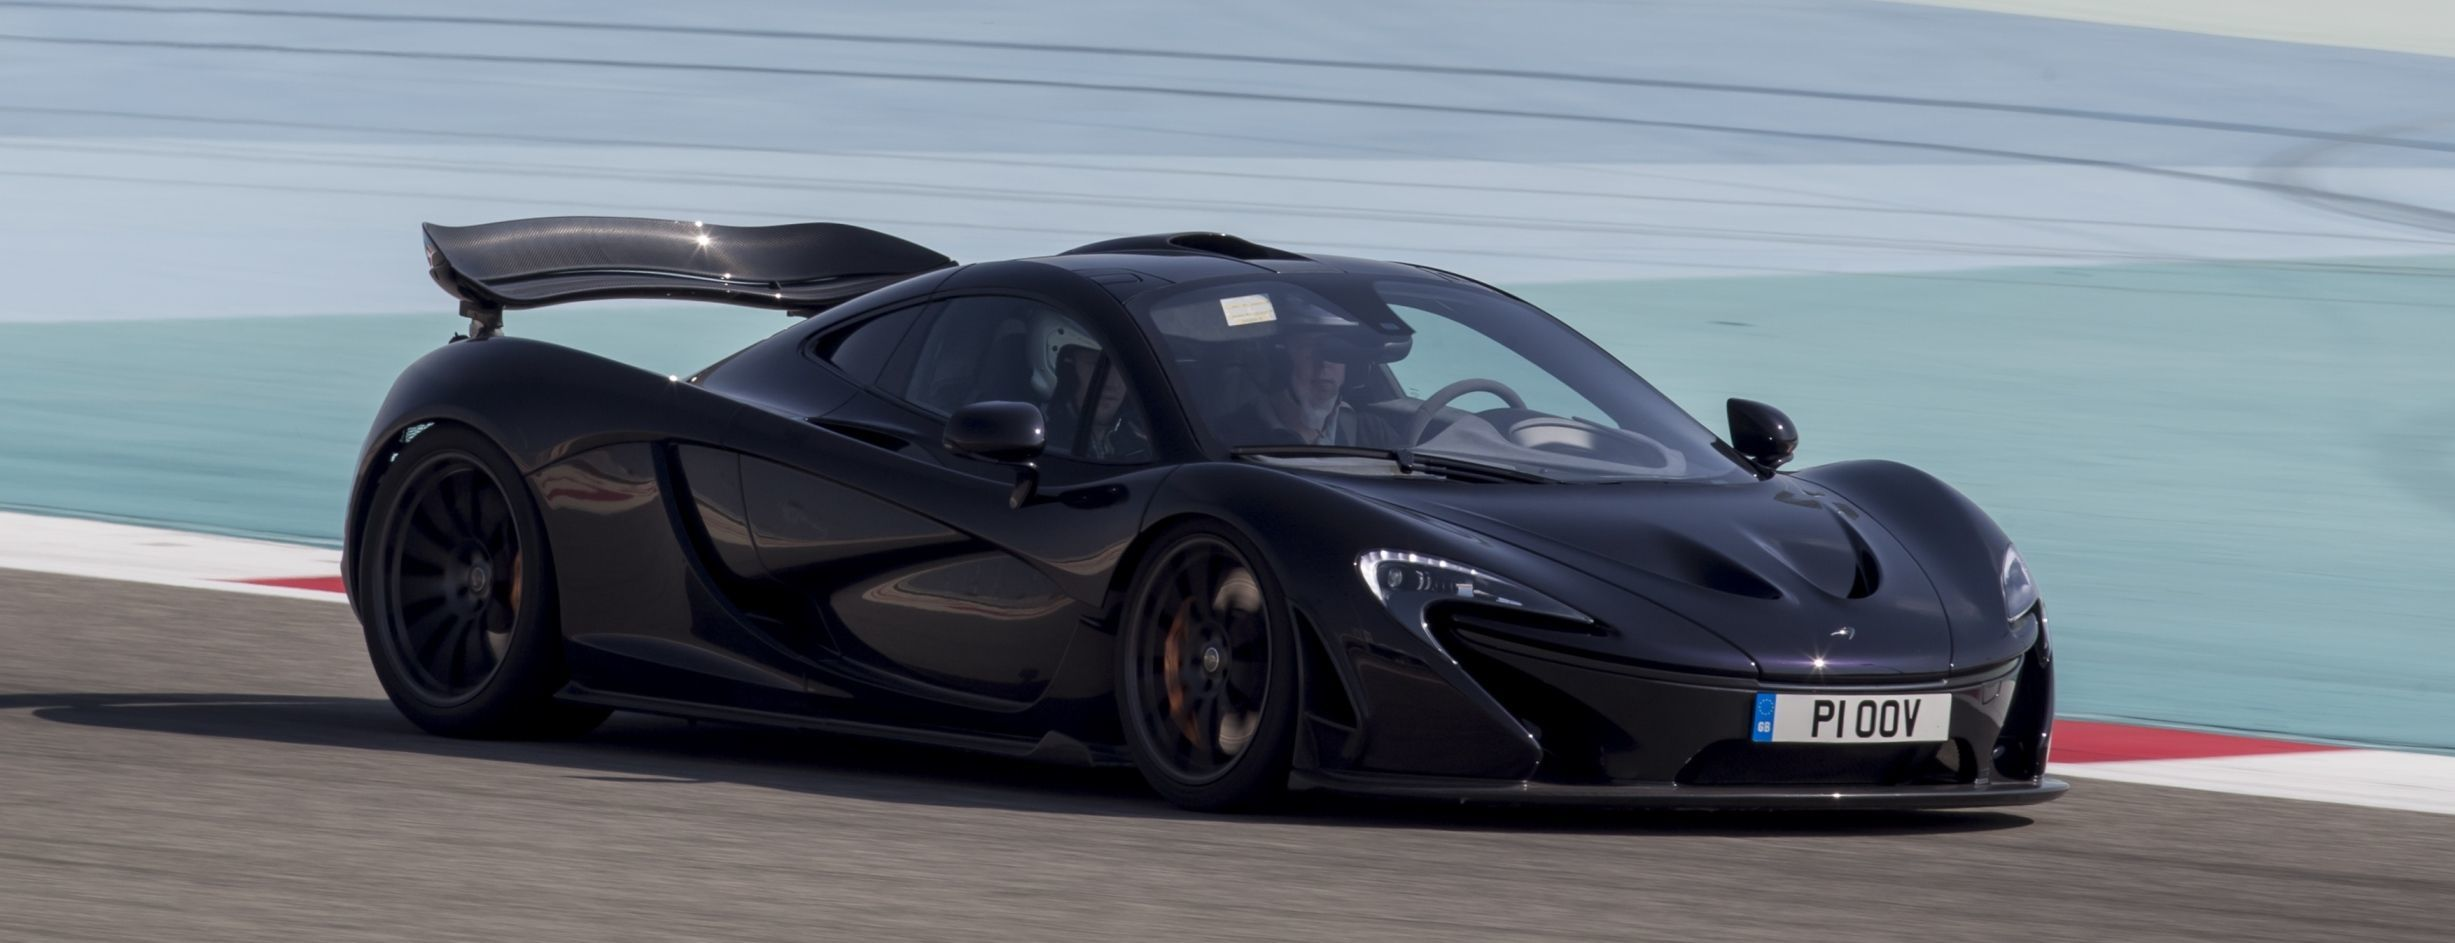 mclaren p1 38 new photos from bahrain gp course triumph over laferrari almost guaranteed. Black Bedroom Furniture Sets. Home Design Ideas